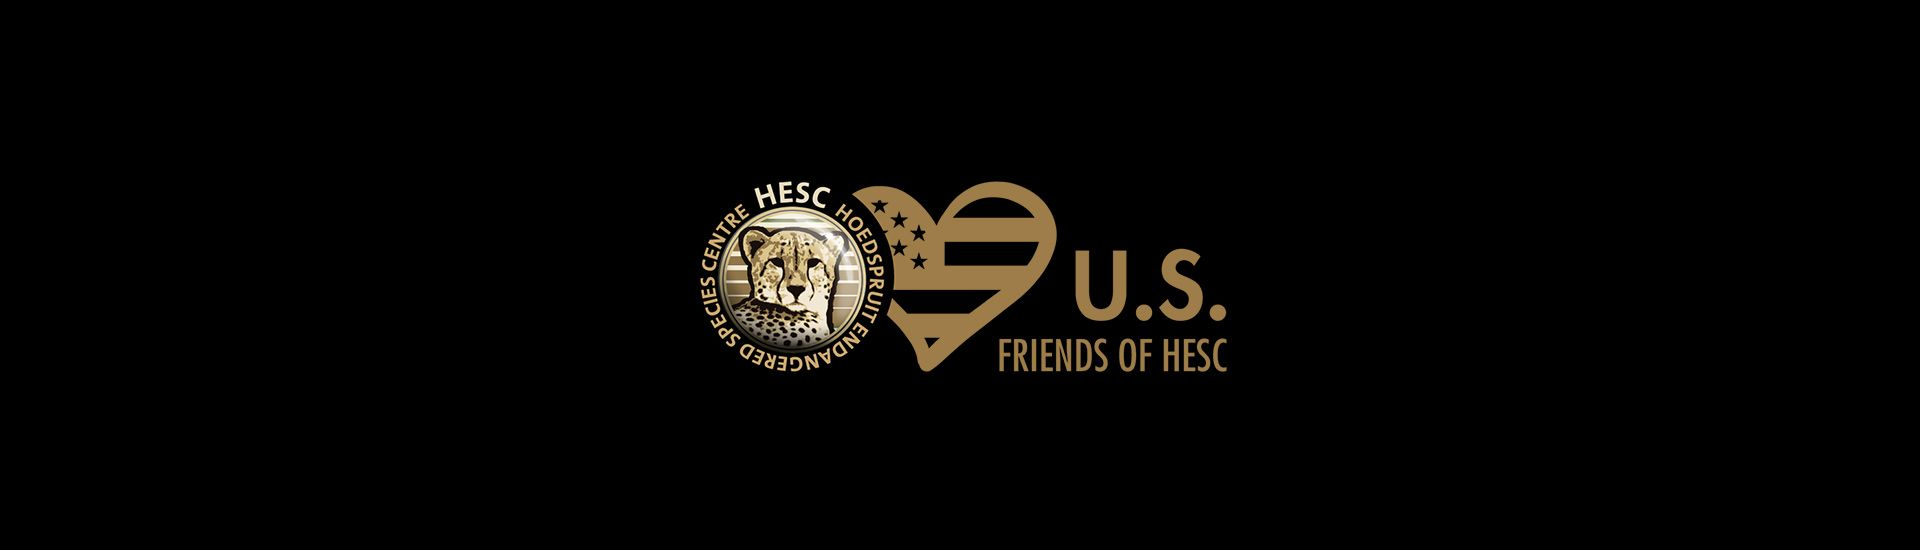 us-friends-of-hesc-banner